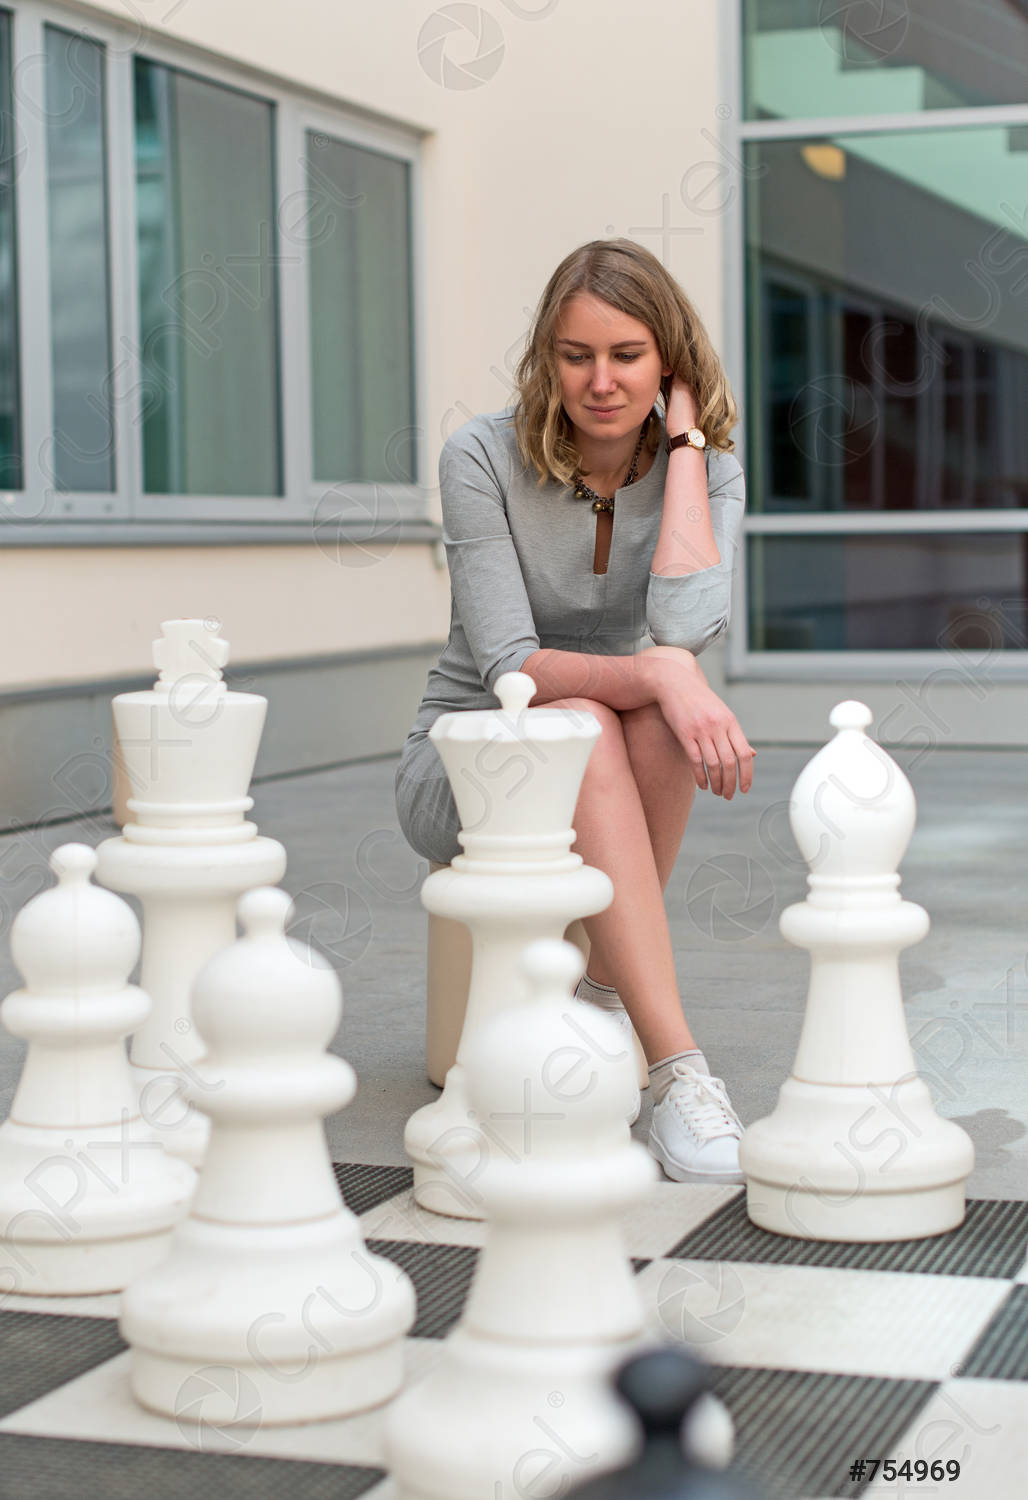 woman-playing-outdoor-chess-game-754969.jpg